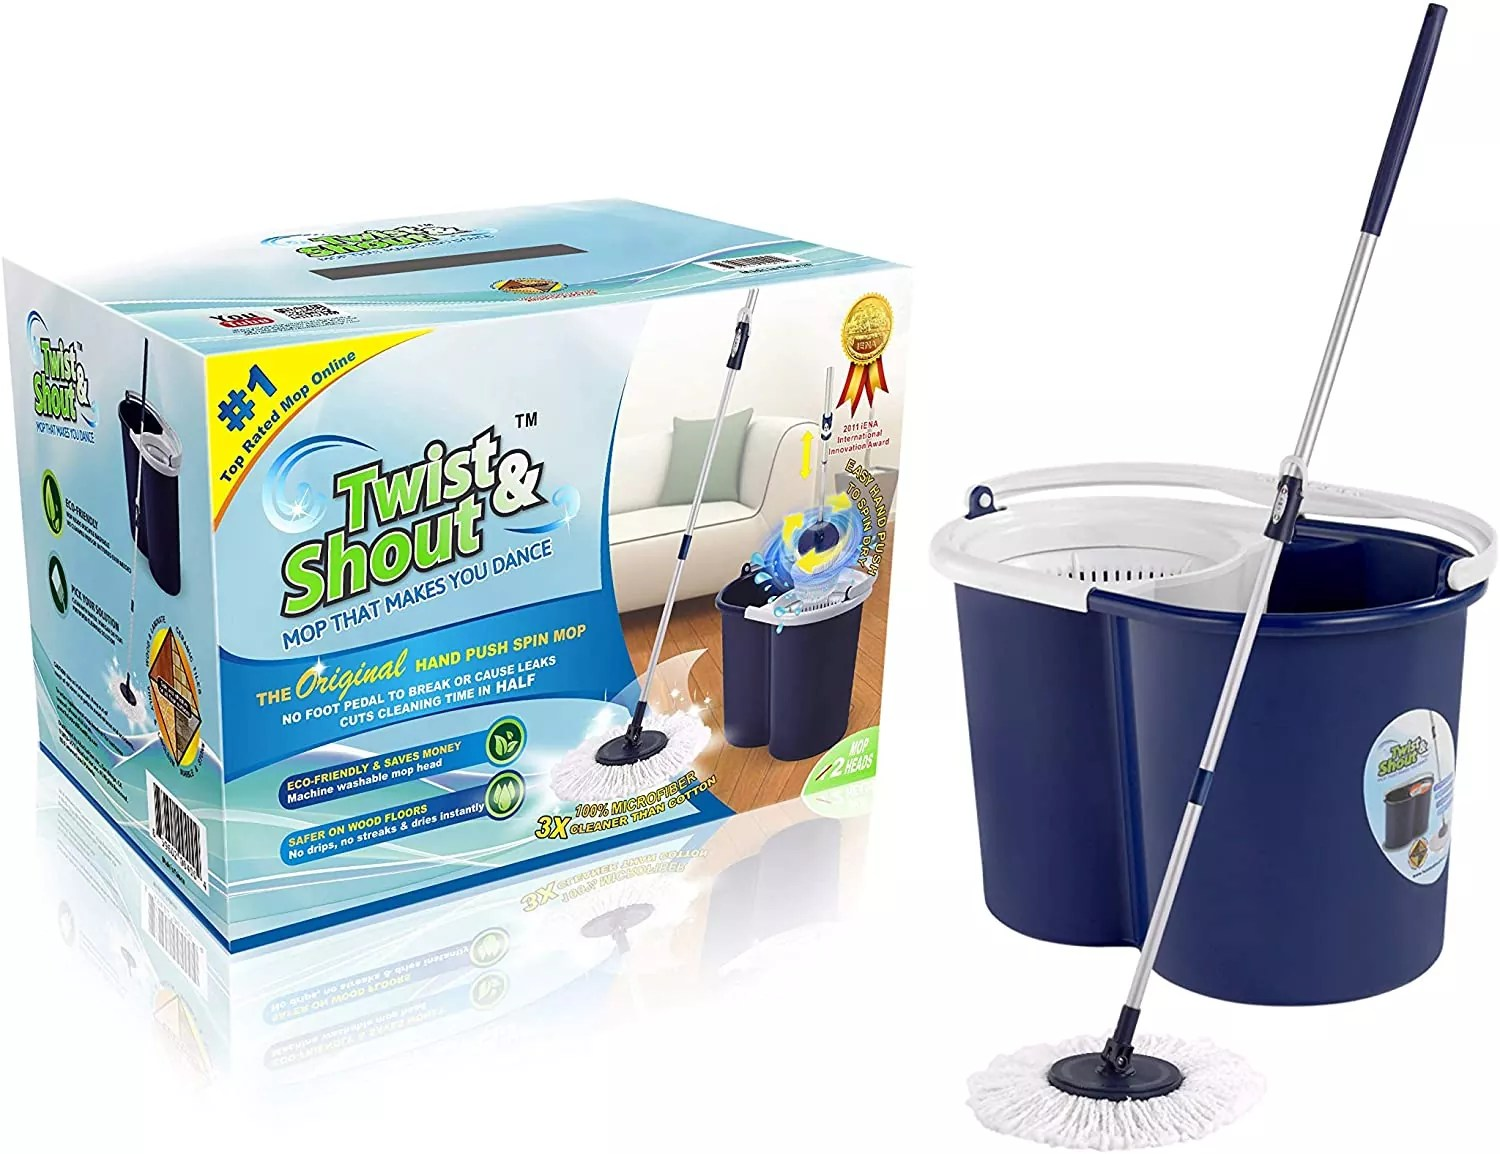 Twist and Shout Mop - Award-Winning Original Hand Push Spin Mop